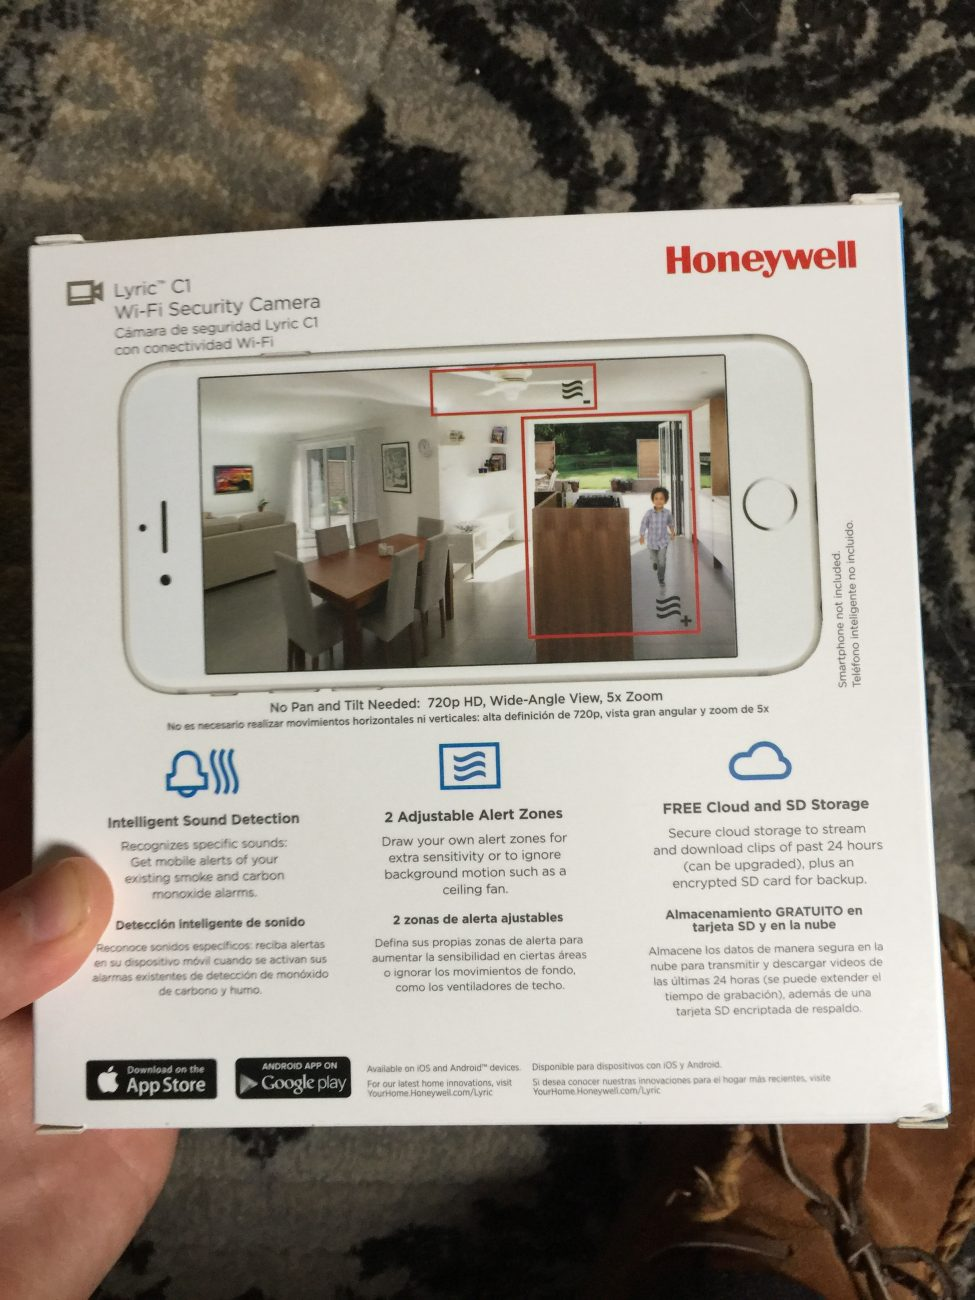 Hands On Review: Honeywell Lyric C1 Wi-Fi Security Camera, Hands On Review, Honeywell Lyric C1, Wi-Fi Security Camera, Security Camera, camera, security, IoT, smart home, wi-fi